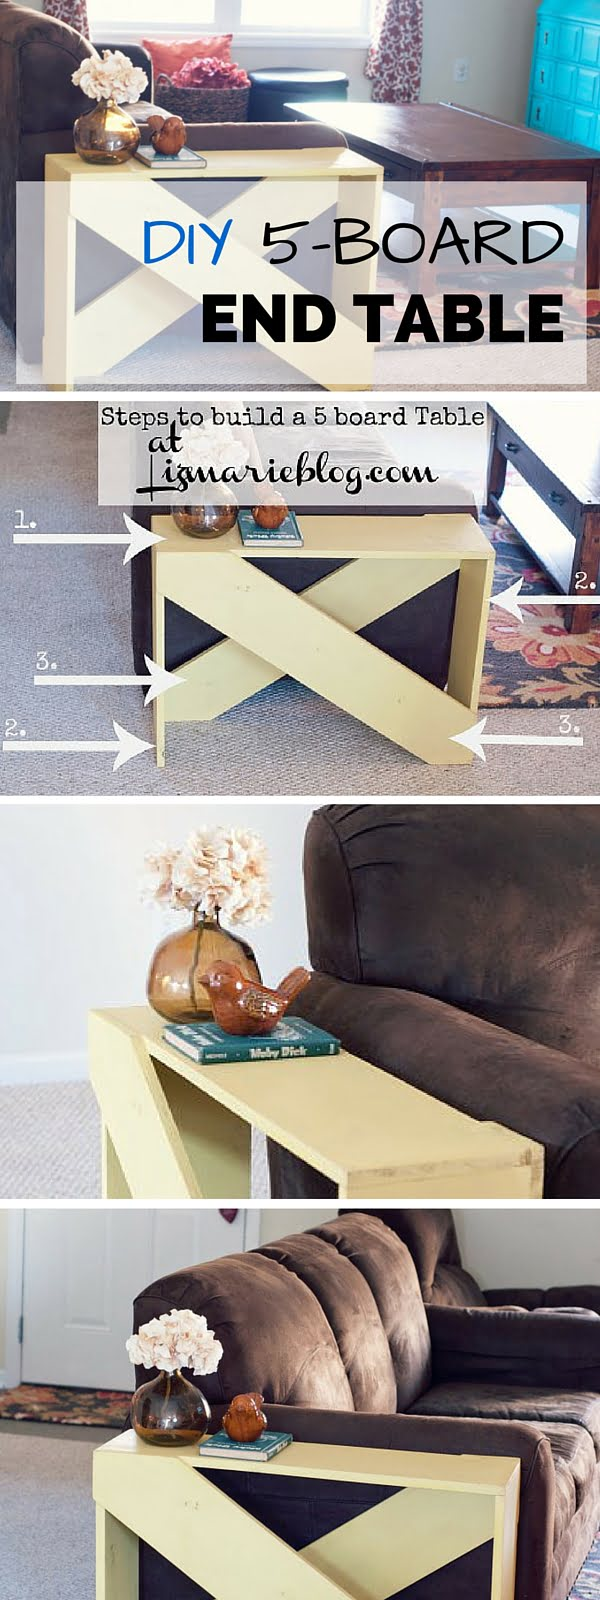 Check out the tutorial: #DIY 5-Board End Table #crafts #homedecor